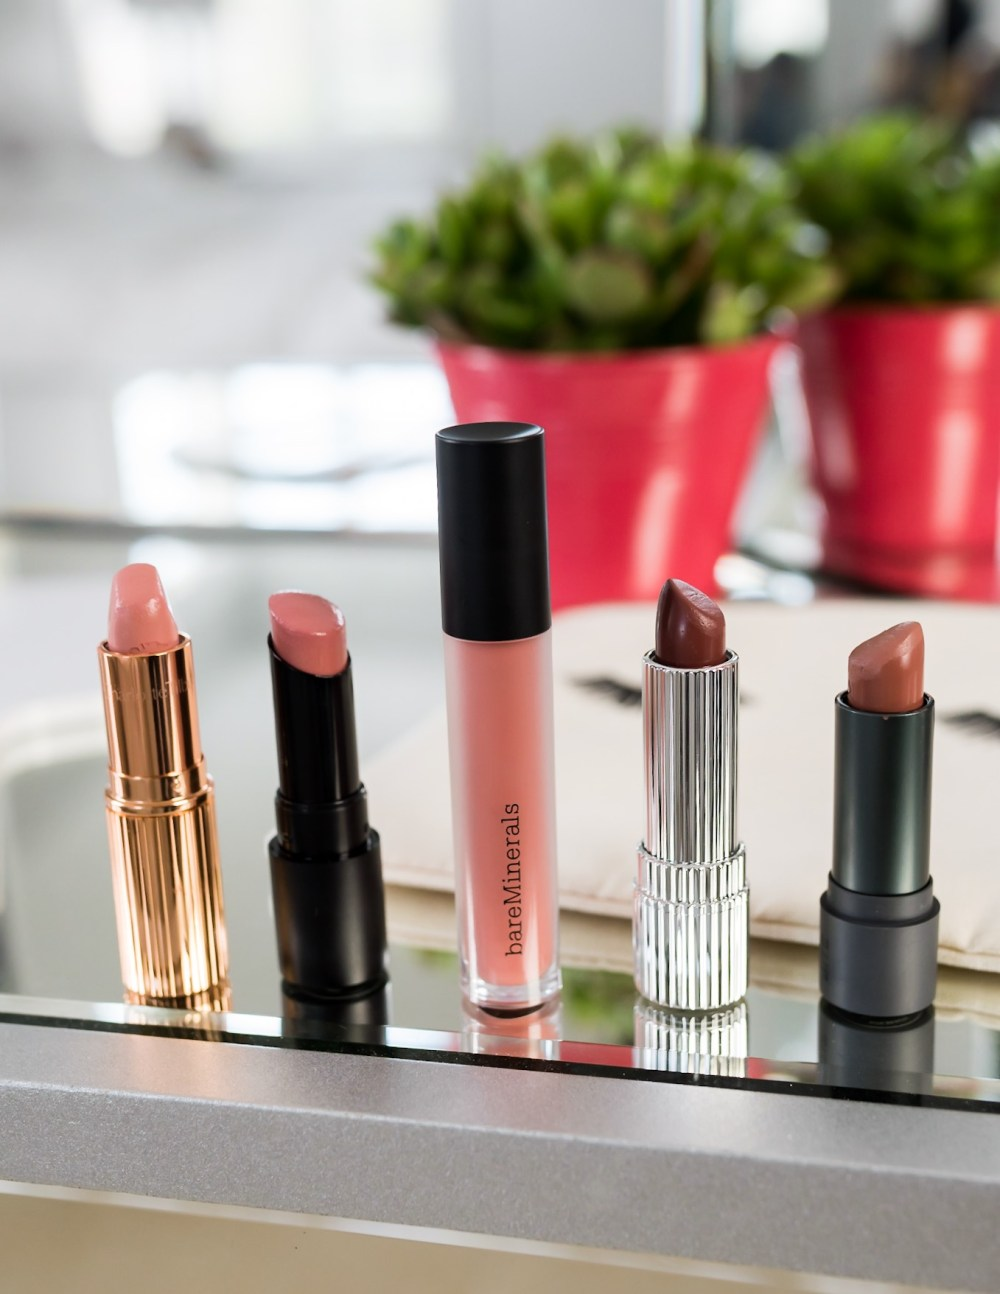 My top 5 Nude Lipsticks Fancy Things